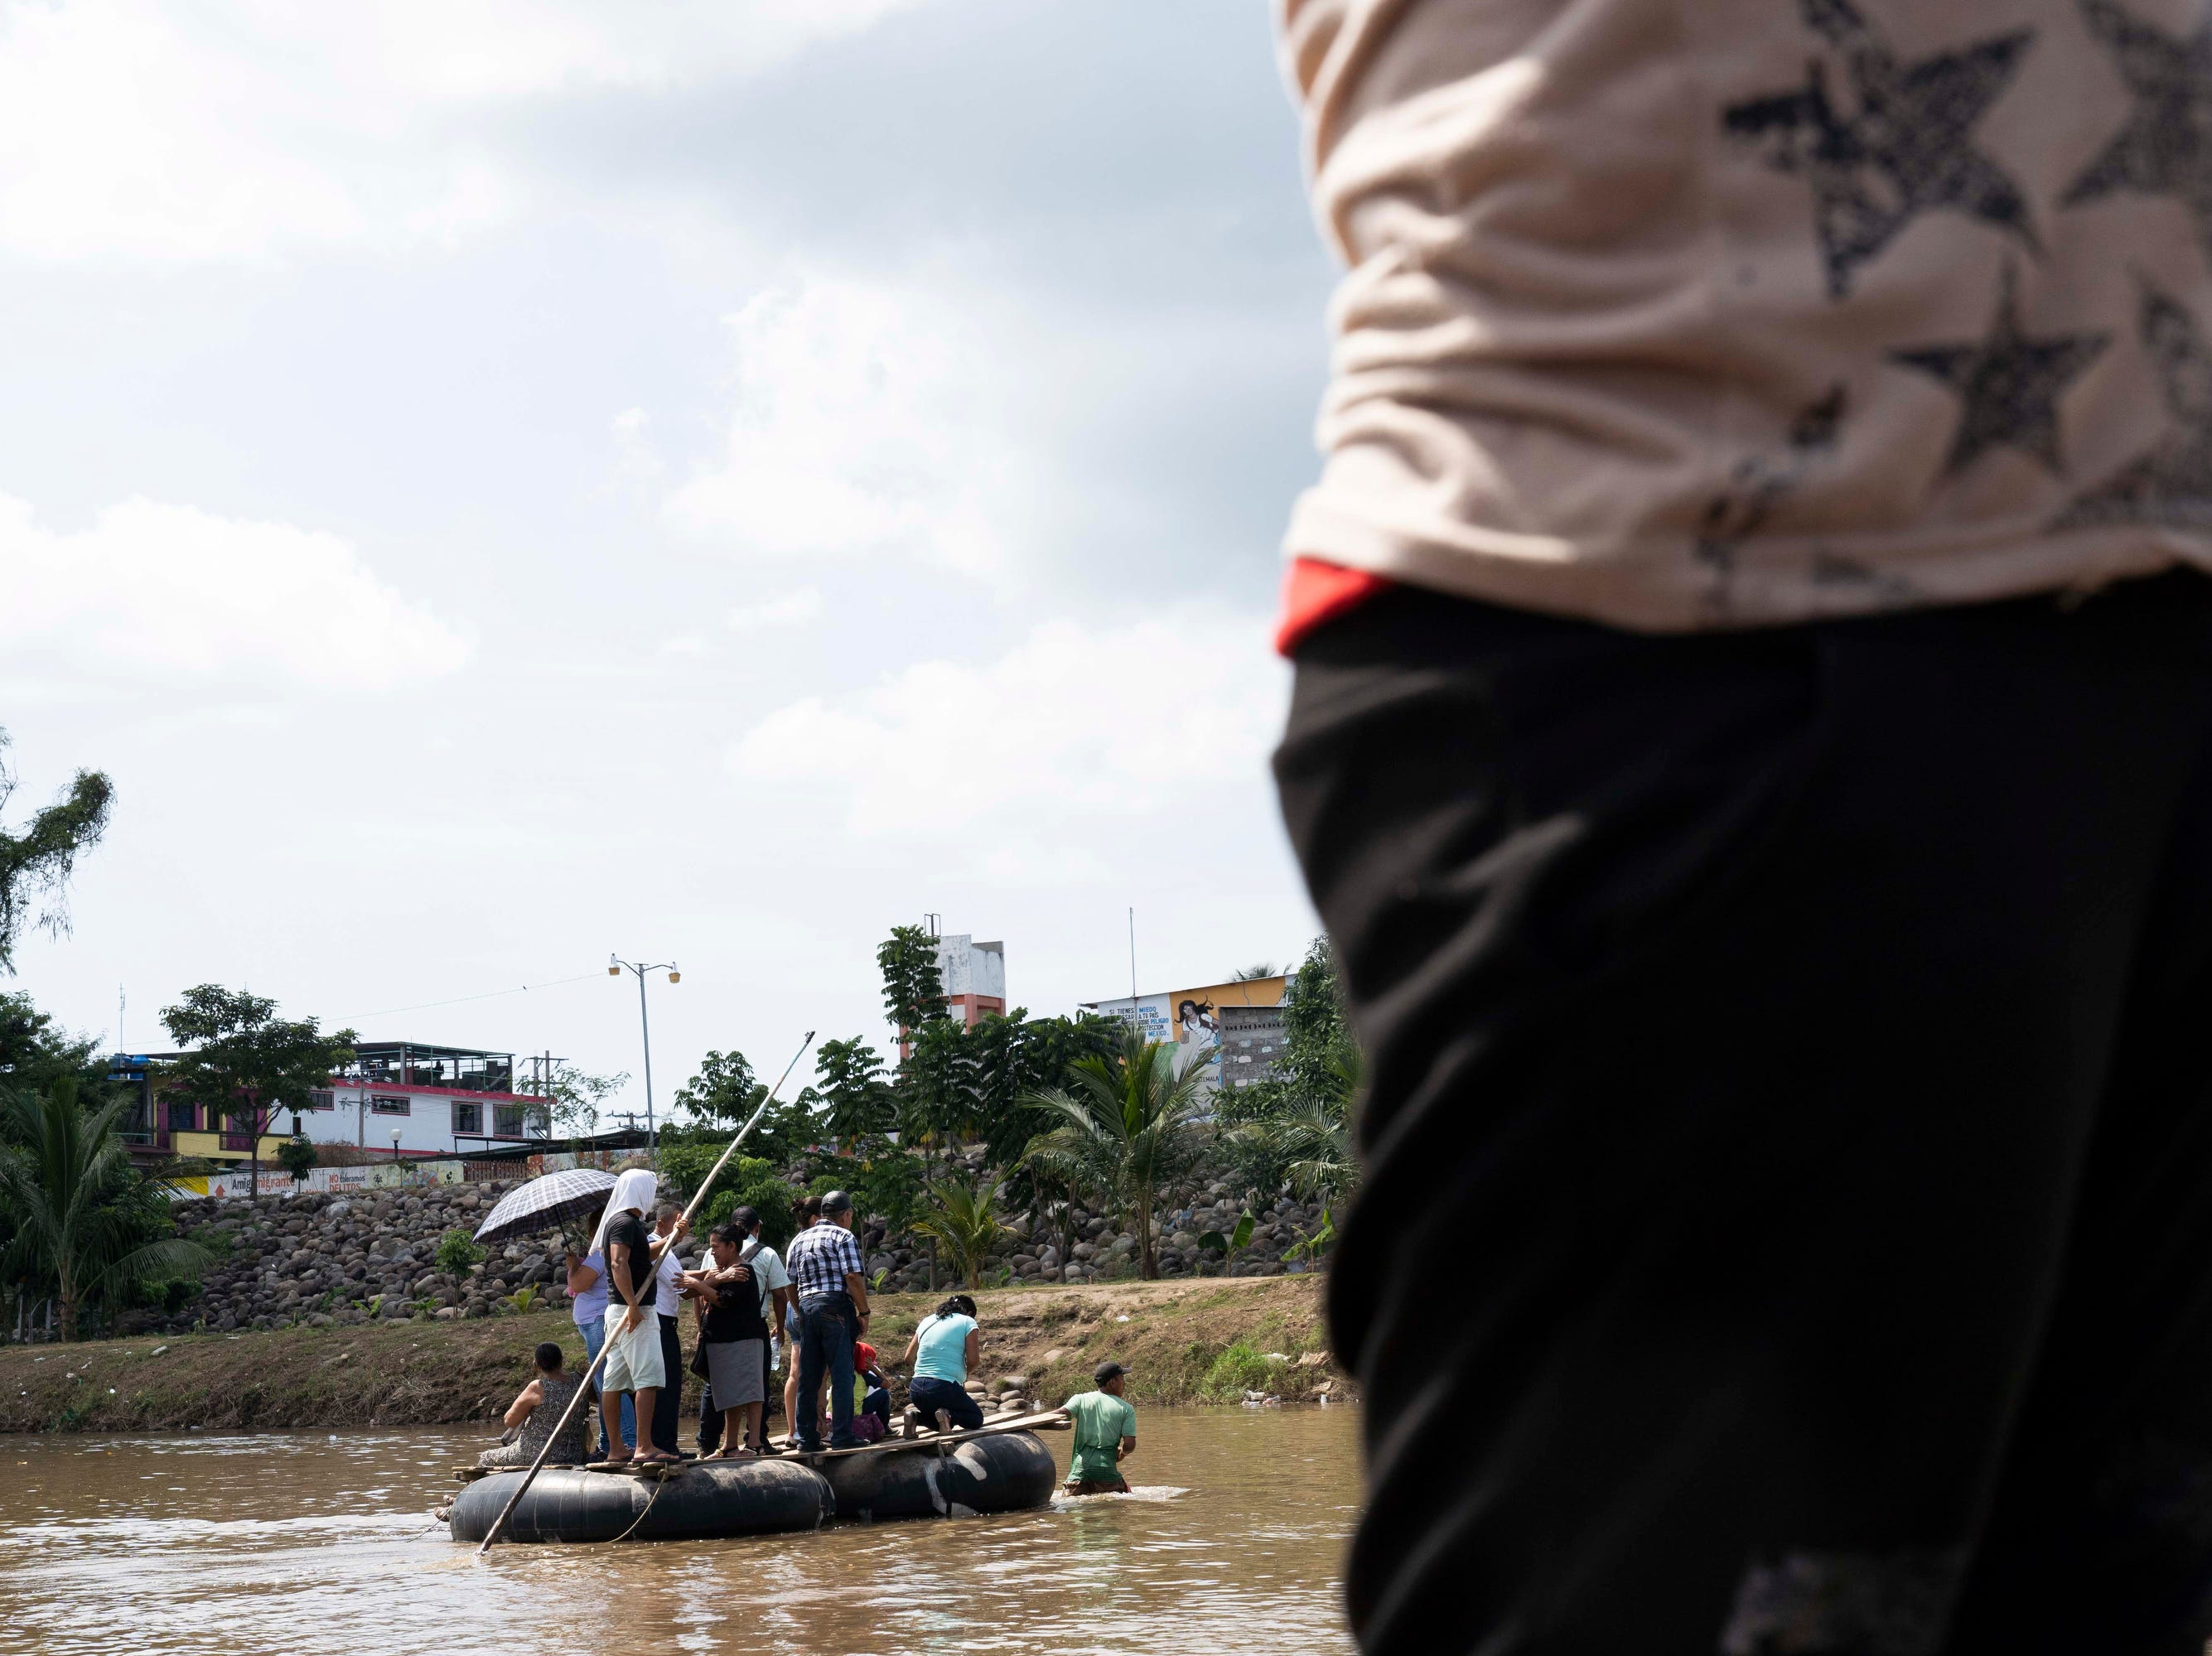 Migrants attempt to cross the Suchiate River separating Mexico from Guatemala on Nov. 1, 2018. Mexican immigration officers, federal police stood on the banks and Mexican Marines patrolled the river by boat. A Mexican immigration officer who was not authorized to speak said migrants from Central America are being offered the chance to apply for asylum to remain in Mexico as long as they can produce passports from their home countries or other documents ration.